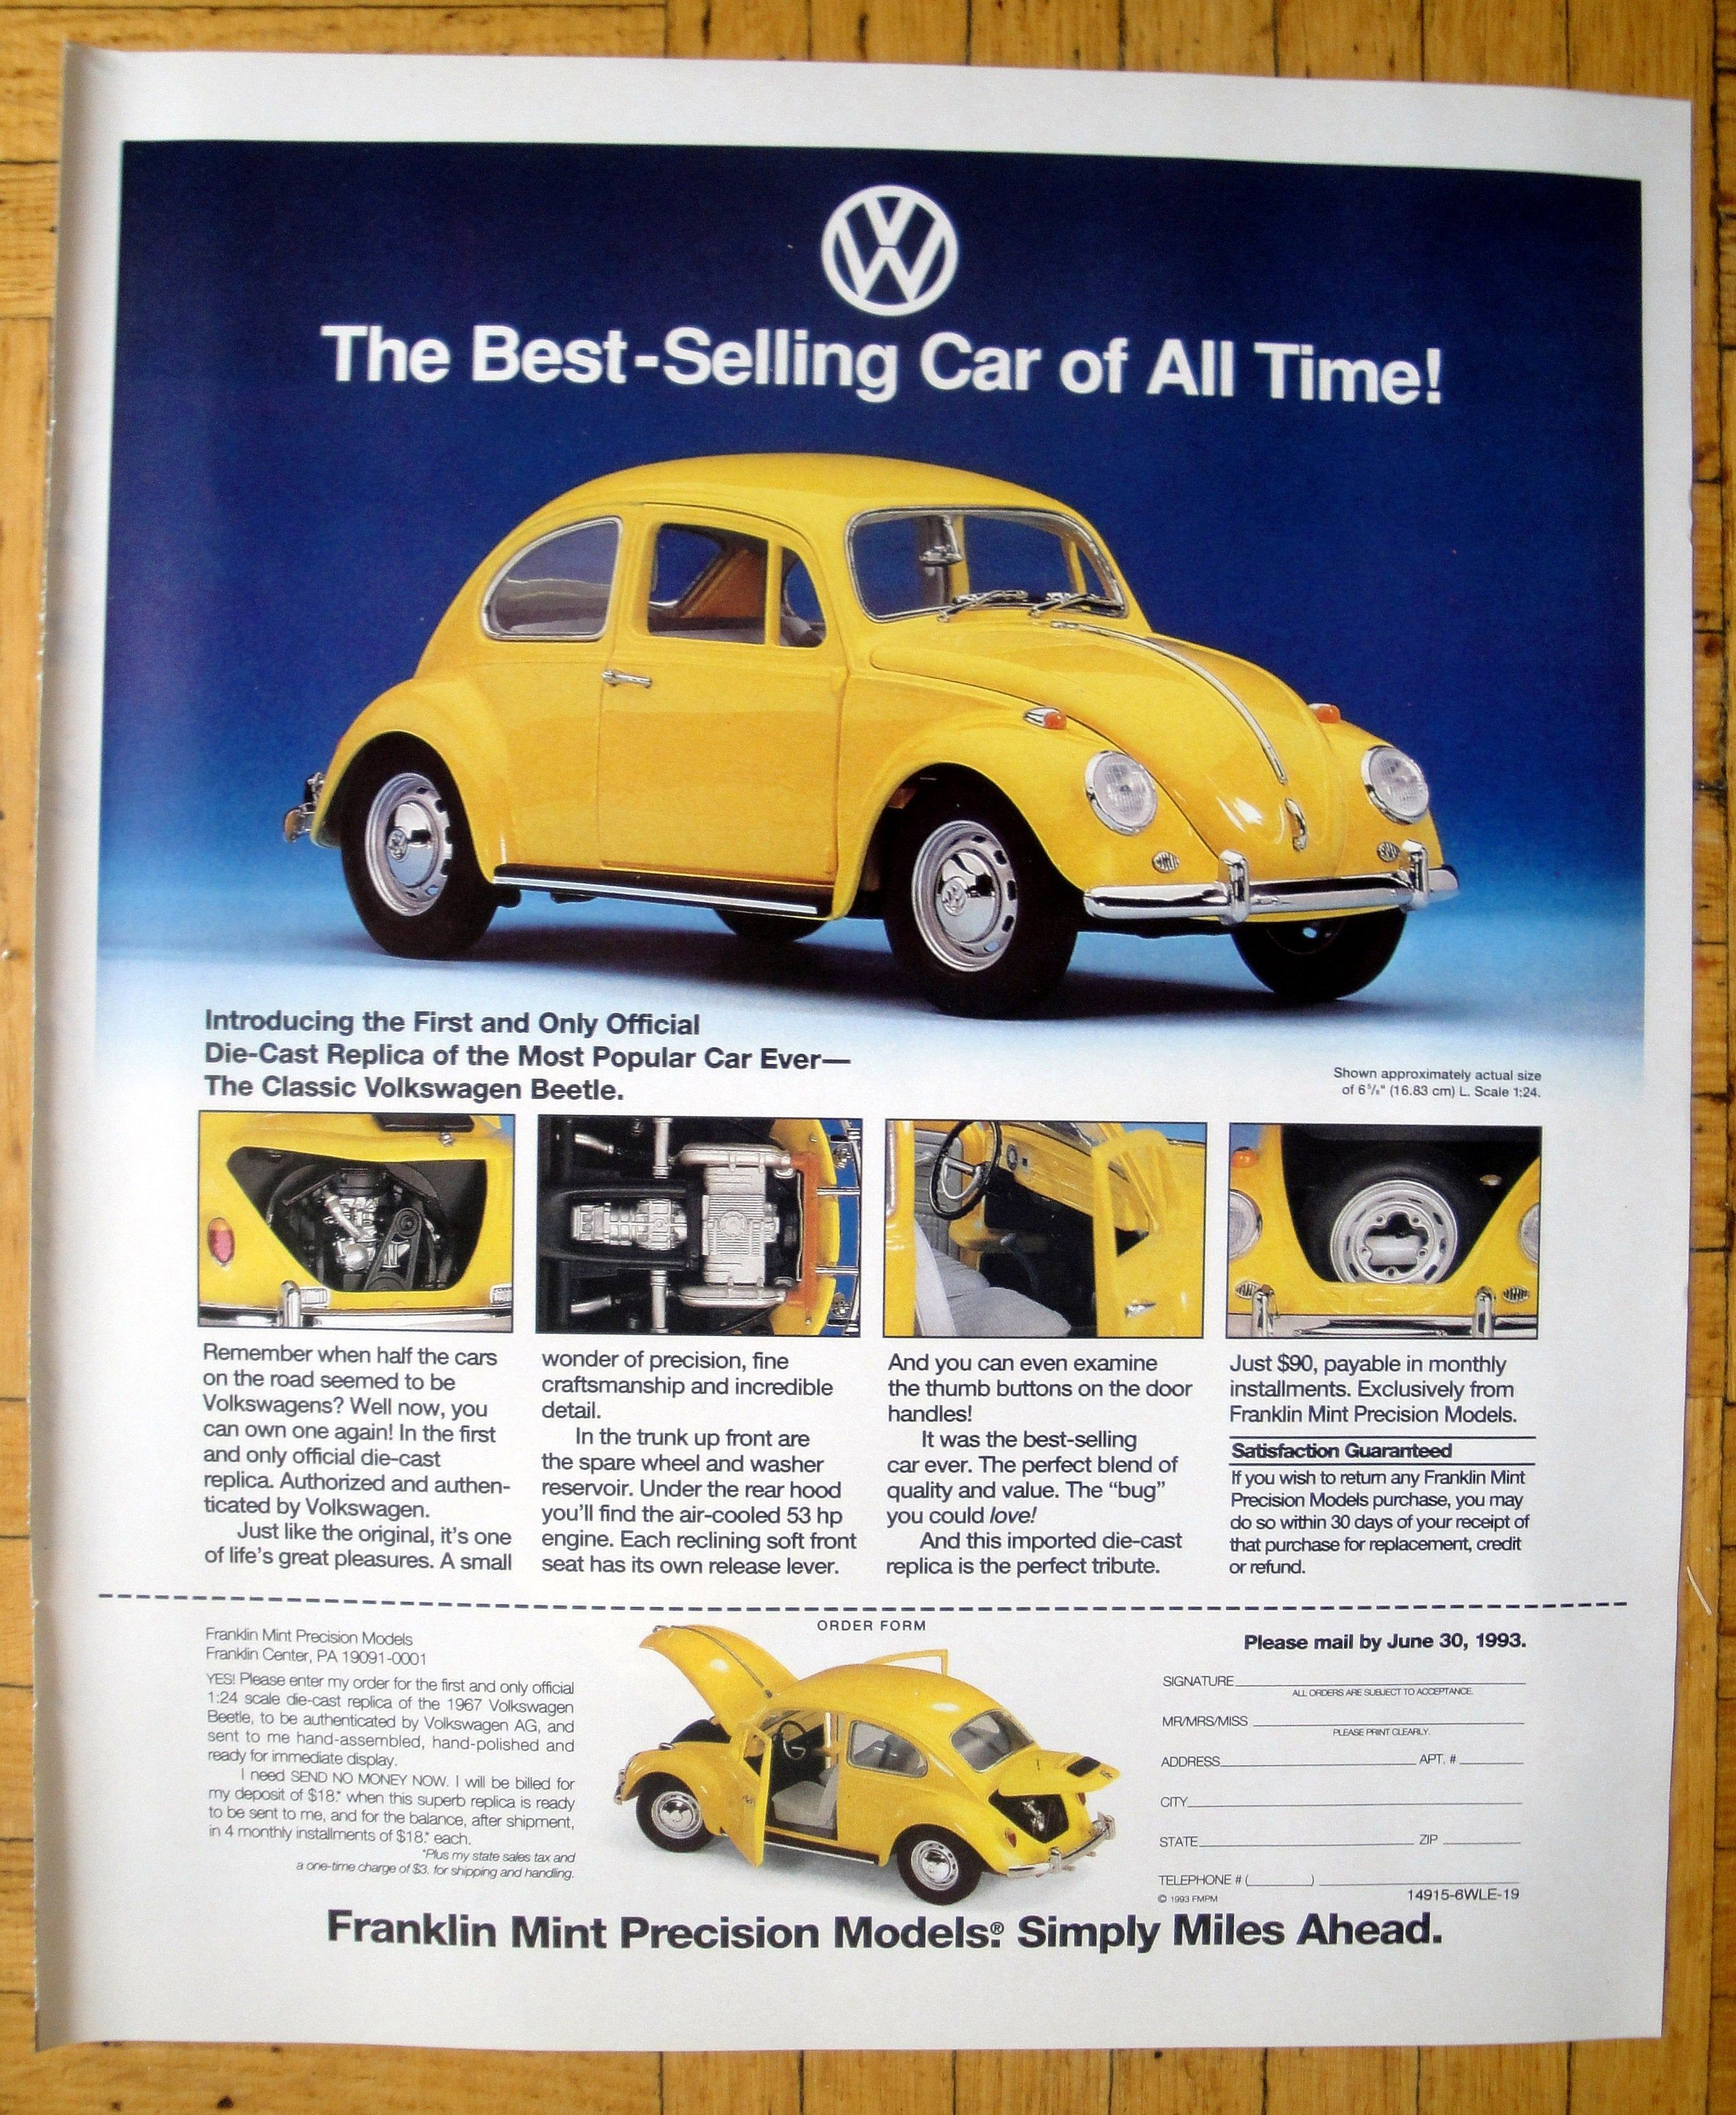 1993 Vw Beetle Yellow Volkswagen Bug Franklin Mint Original 12 Etsy Volkswagen Classic Volkswagen Beetle Vw Beetles